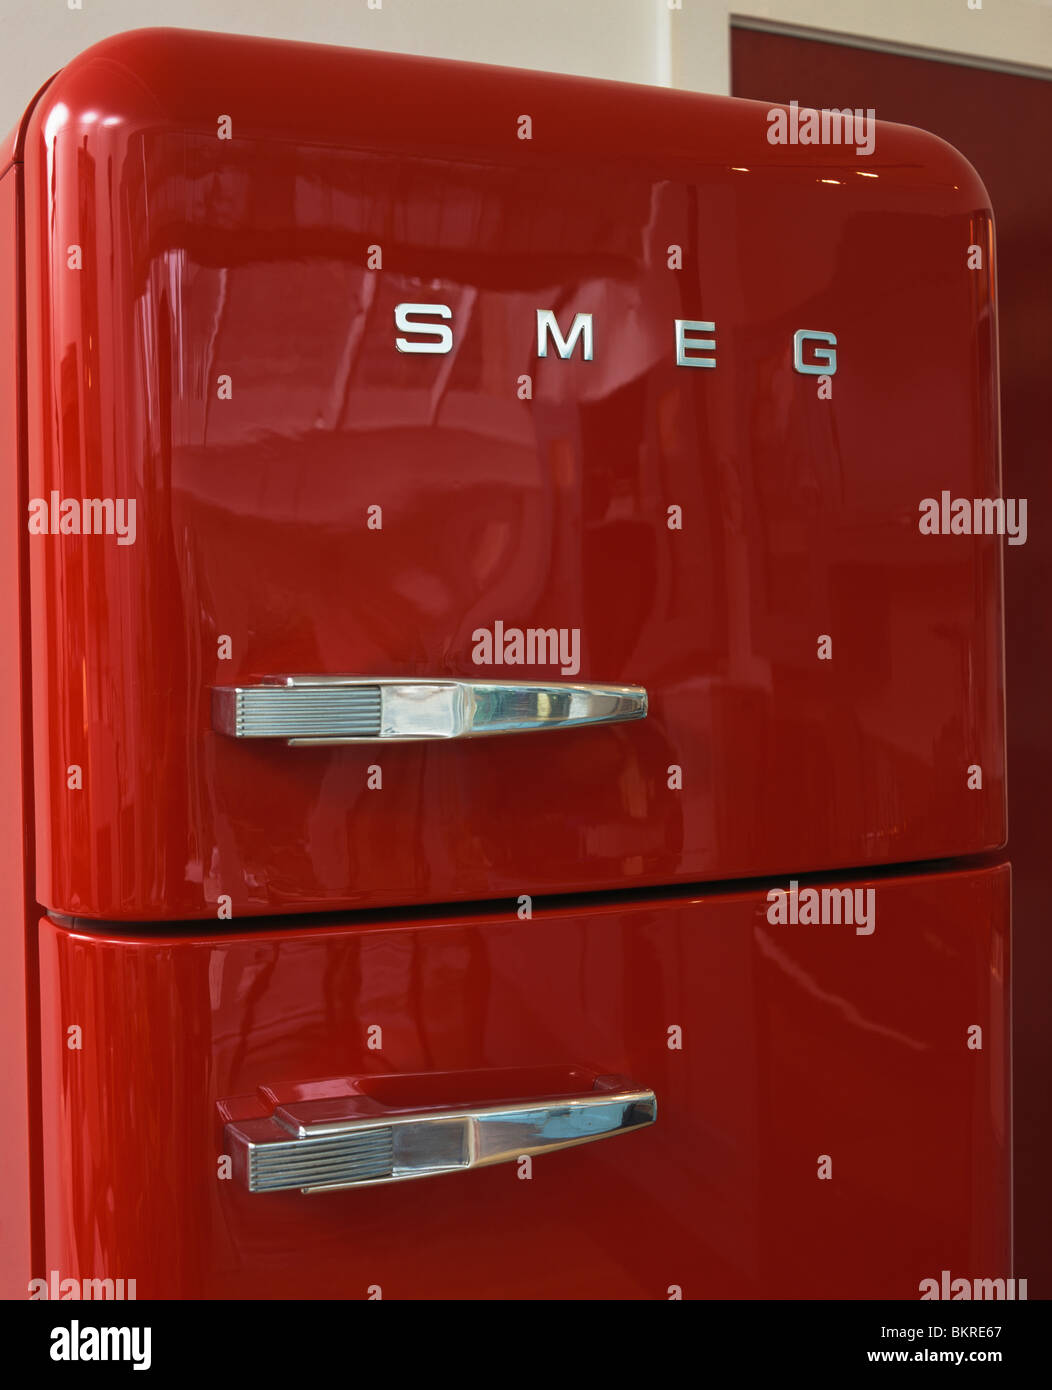 Smeg Stock Photos & Smeg Stock Images - Alamy